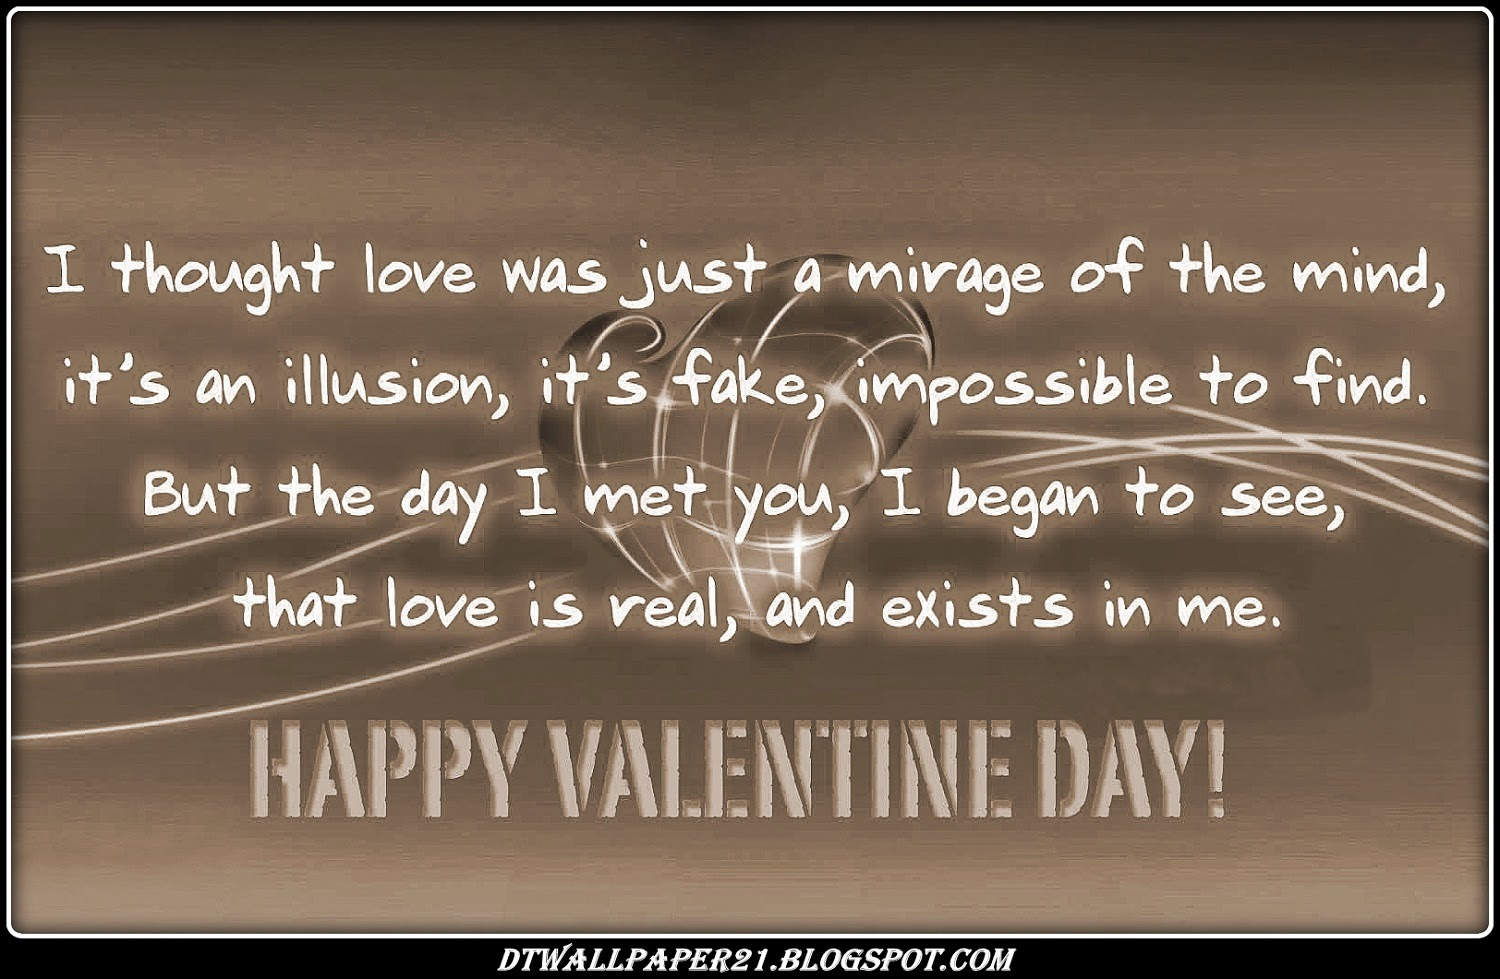 Valentines Quotes For Friends Short Quotes For Valentines Day For Friends Valentines Day Quotes